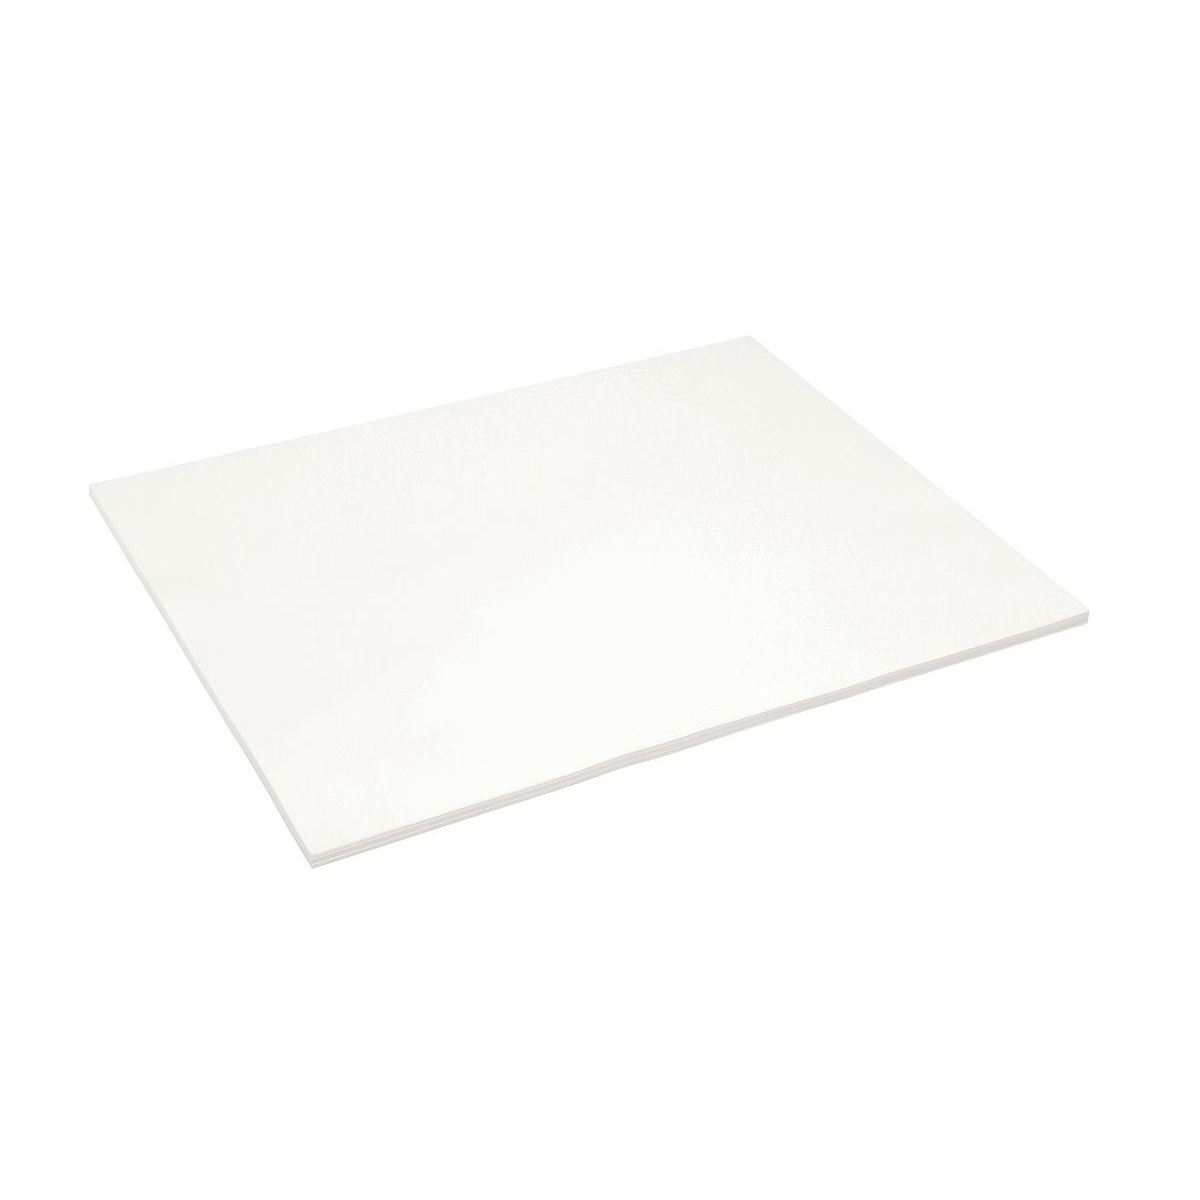 Blotting Blotting Paper Full Demy W570xD445mm Flat White 50 Sheets